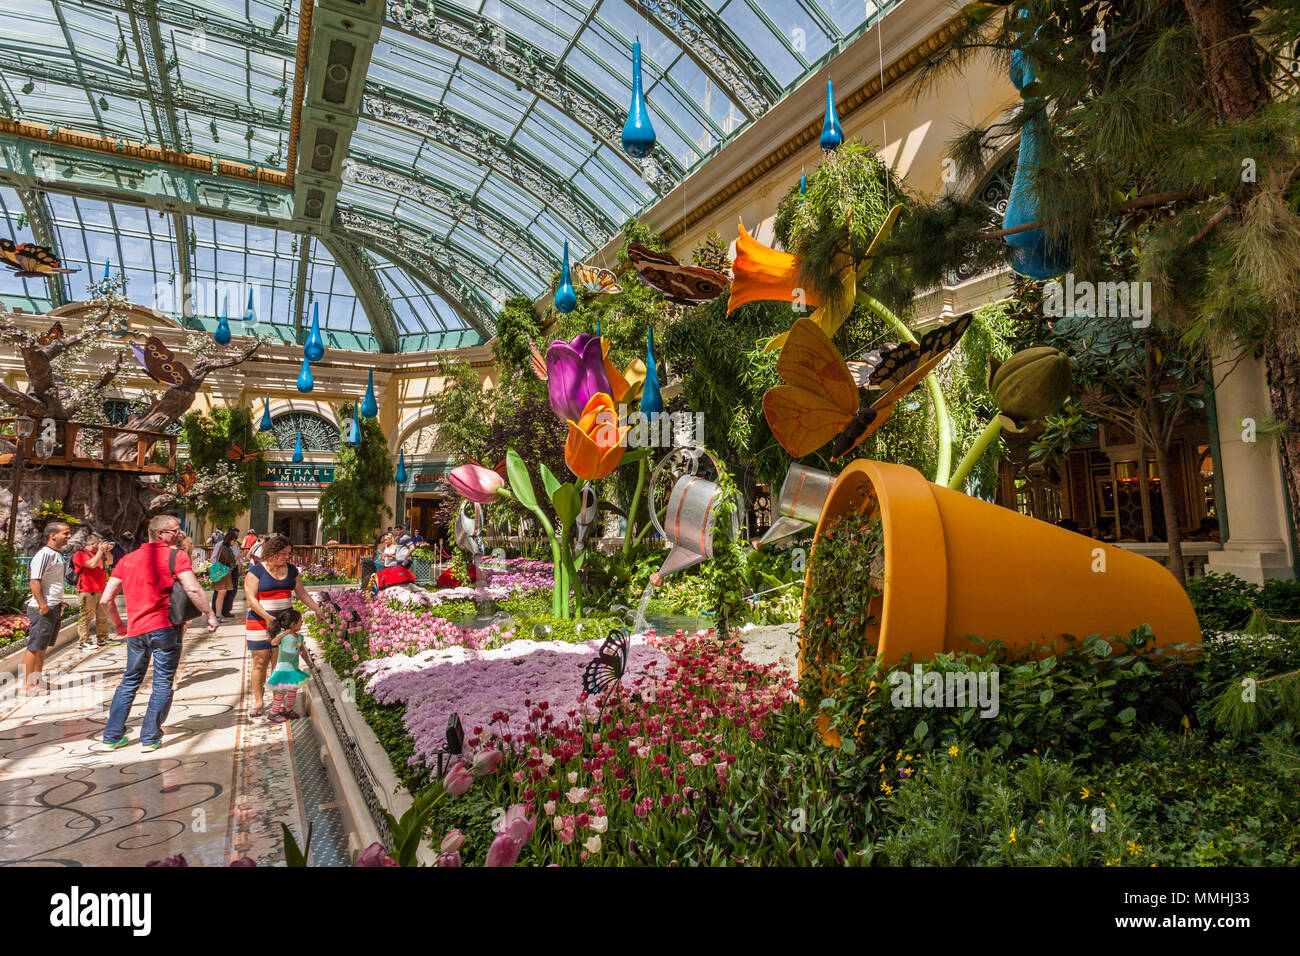 The Us Botanical Gardens Stock Photos & The Us Botanical Gardens ...